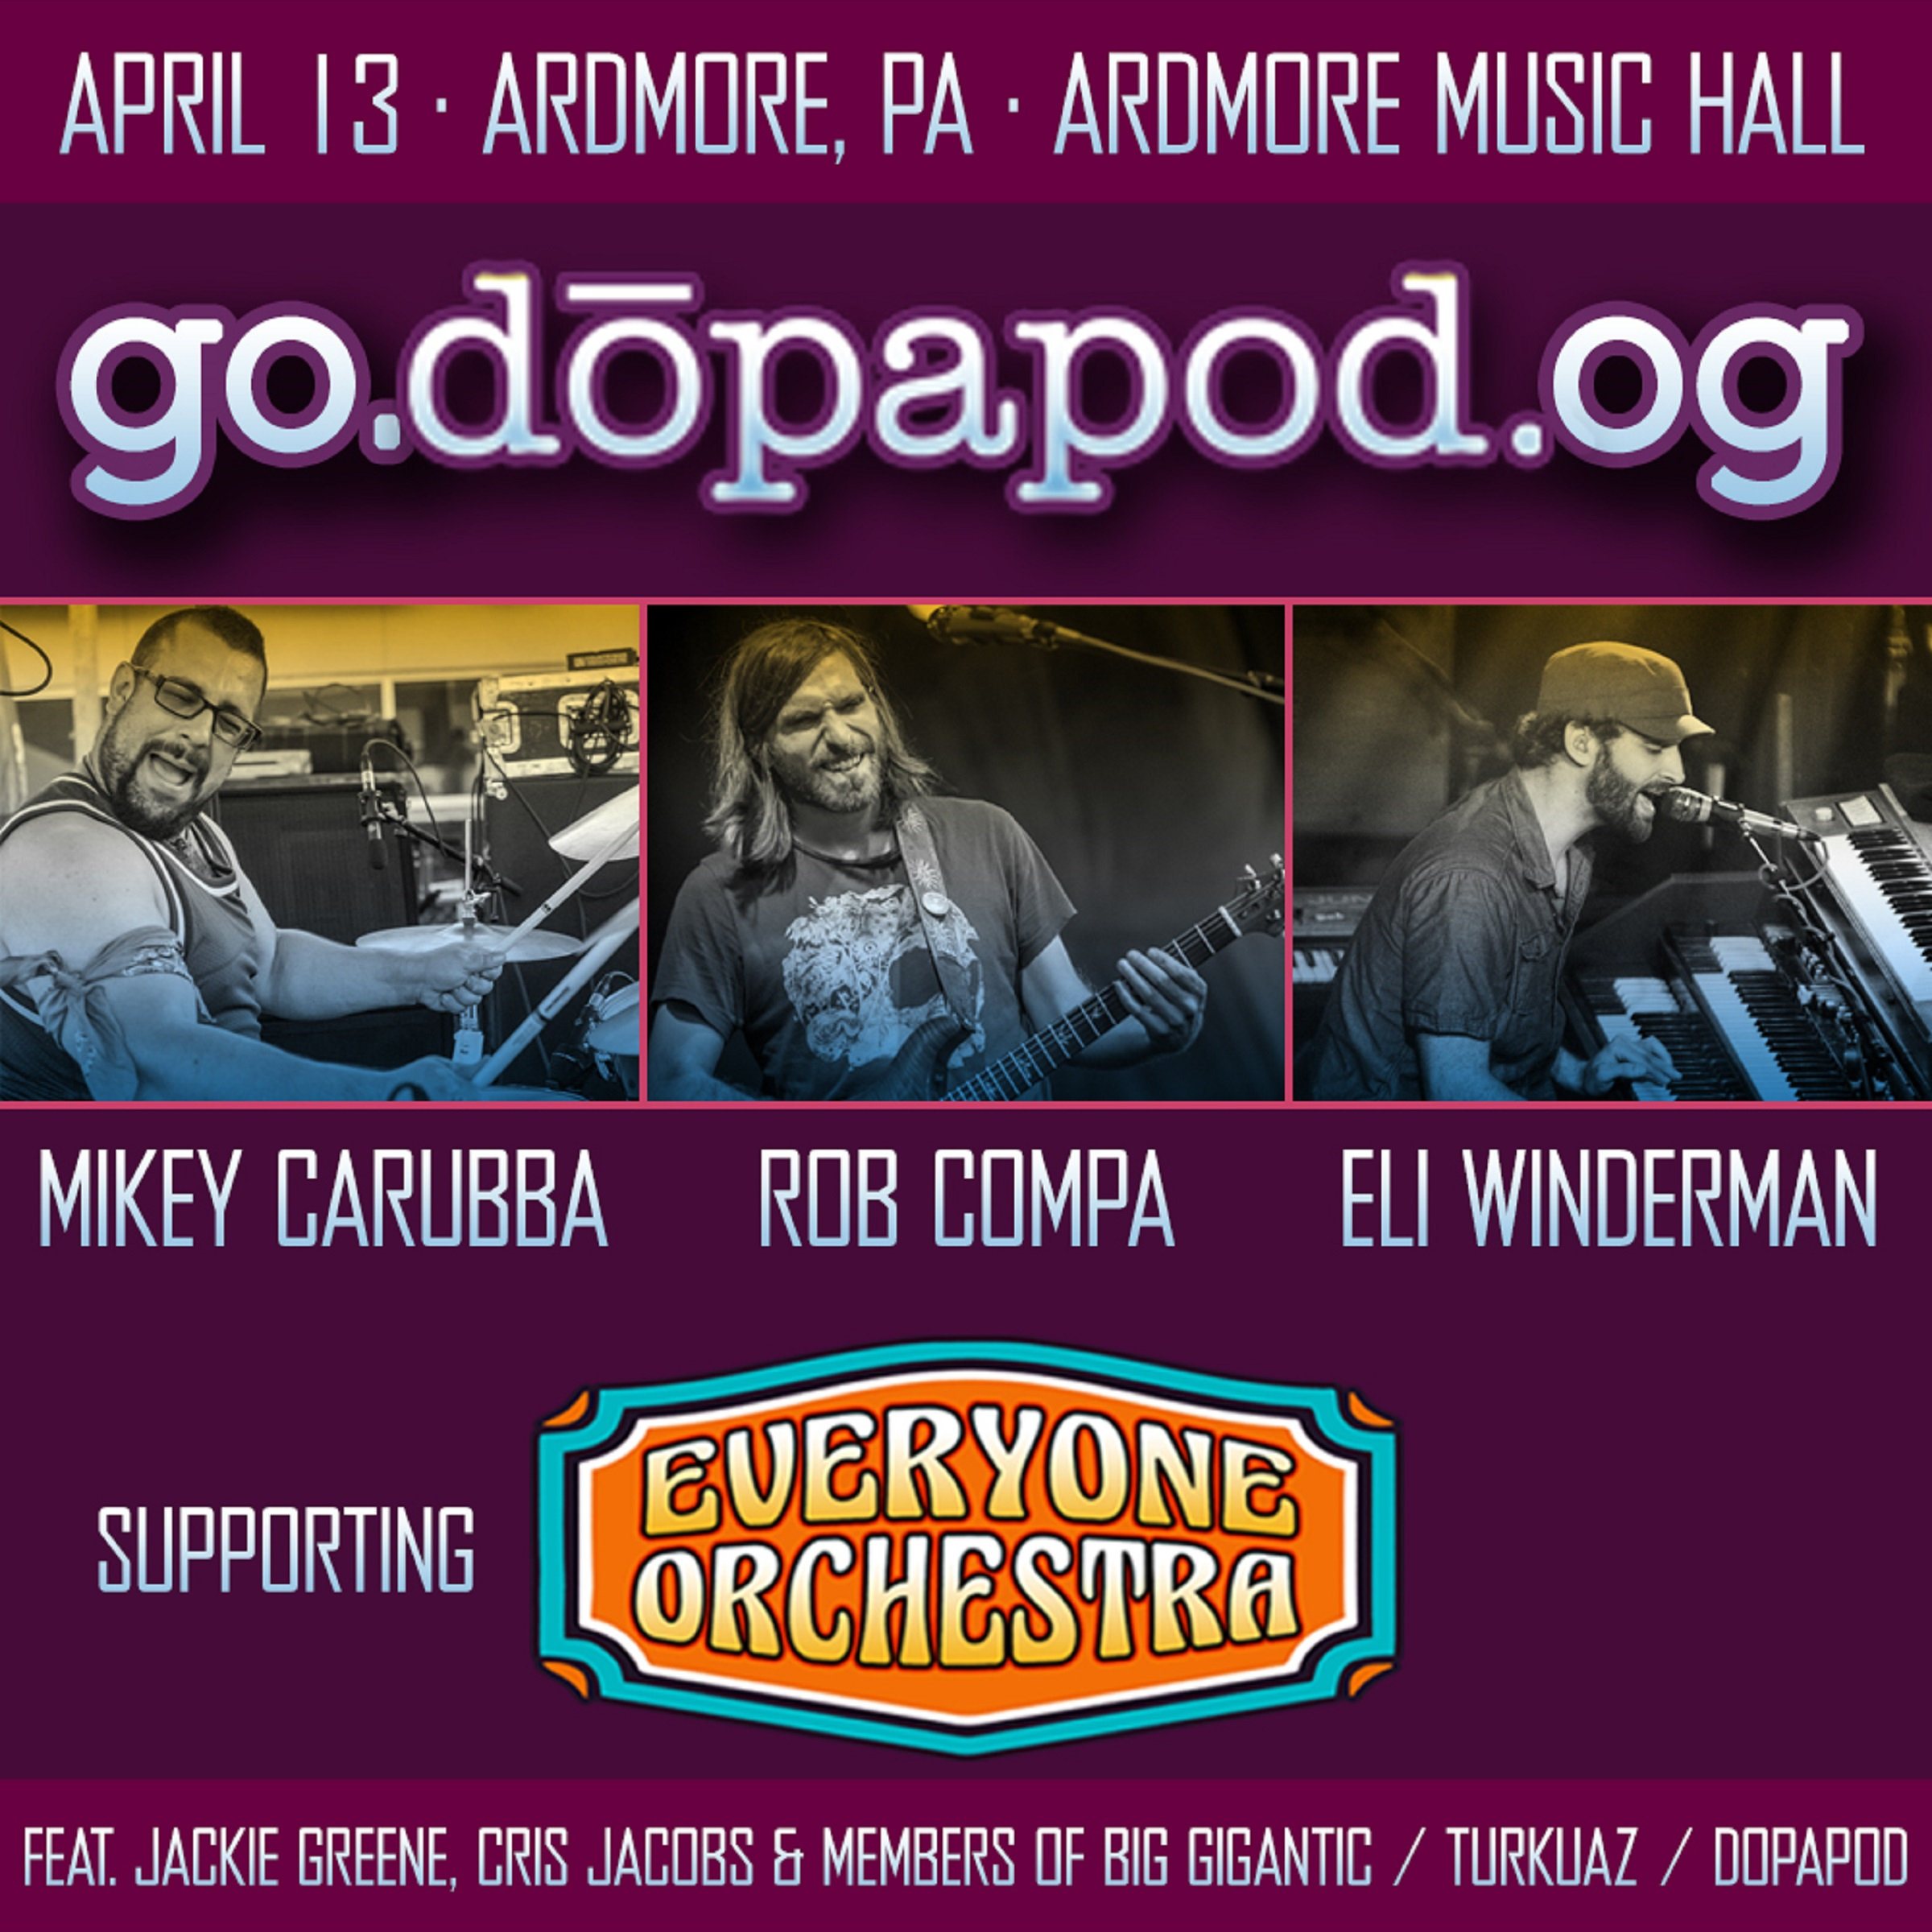 Everyone Orchestra + Dopapod Trio @ Ardmore Music Hall